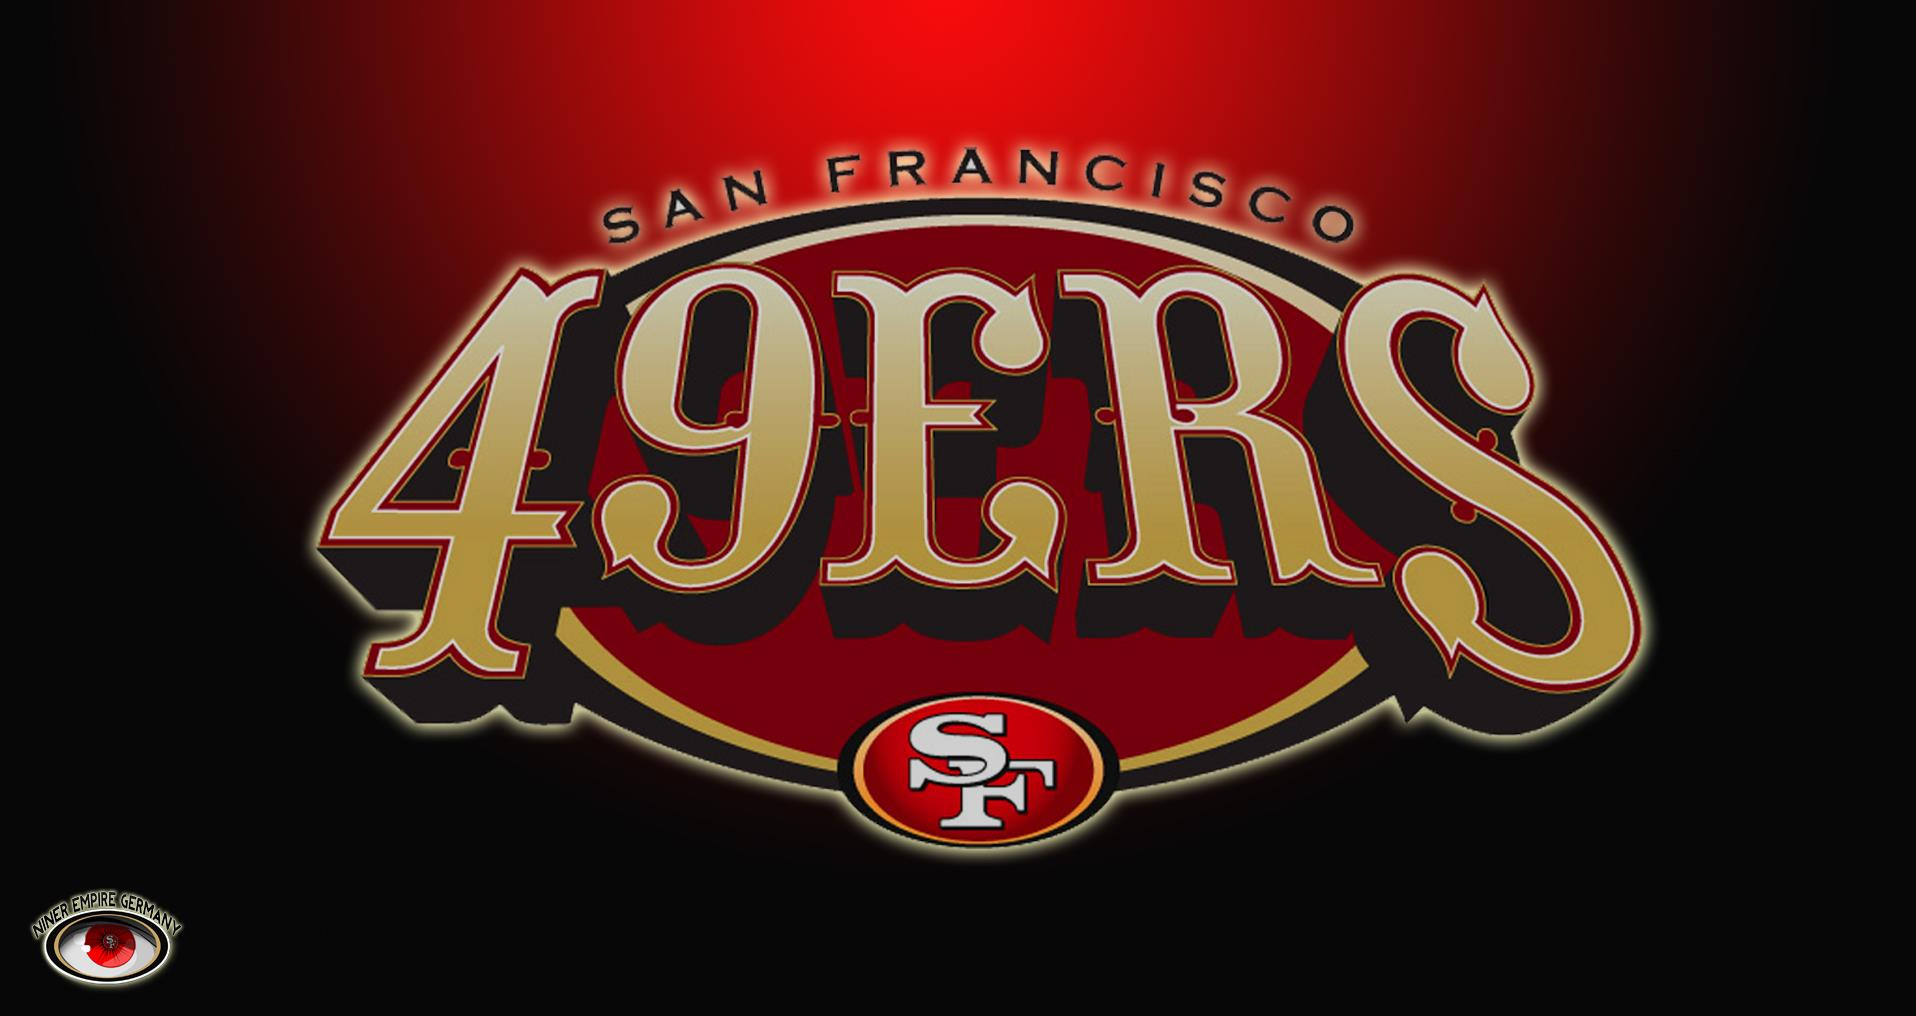 San Francisco 49ers 3d wallpaper logo 1916x1016